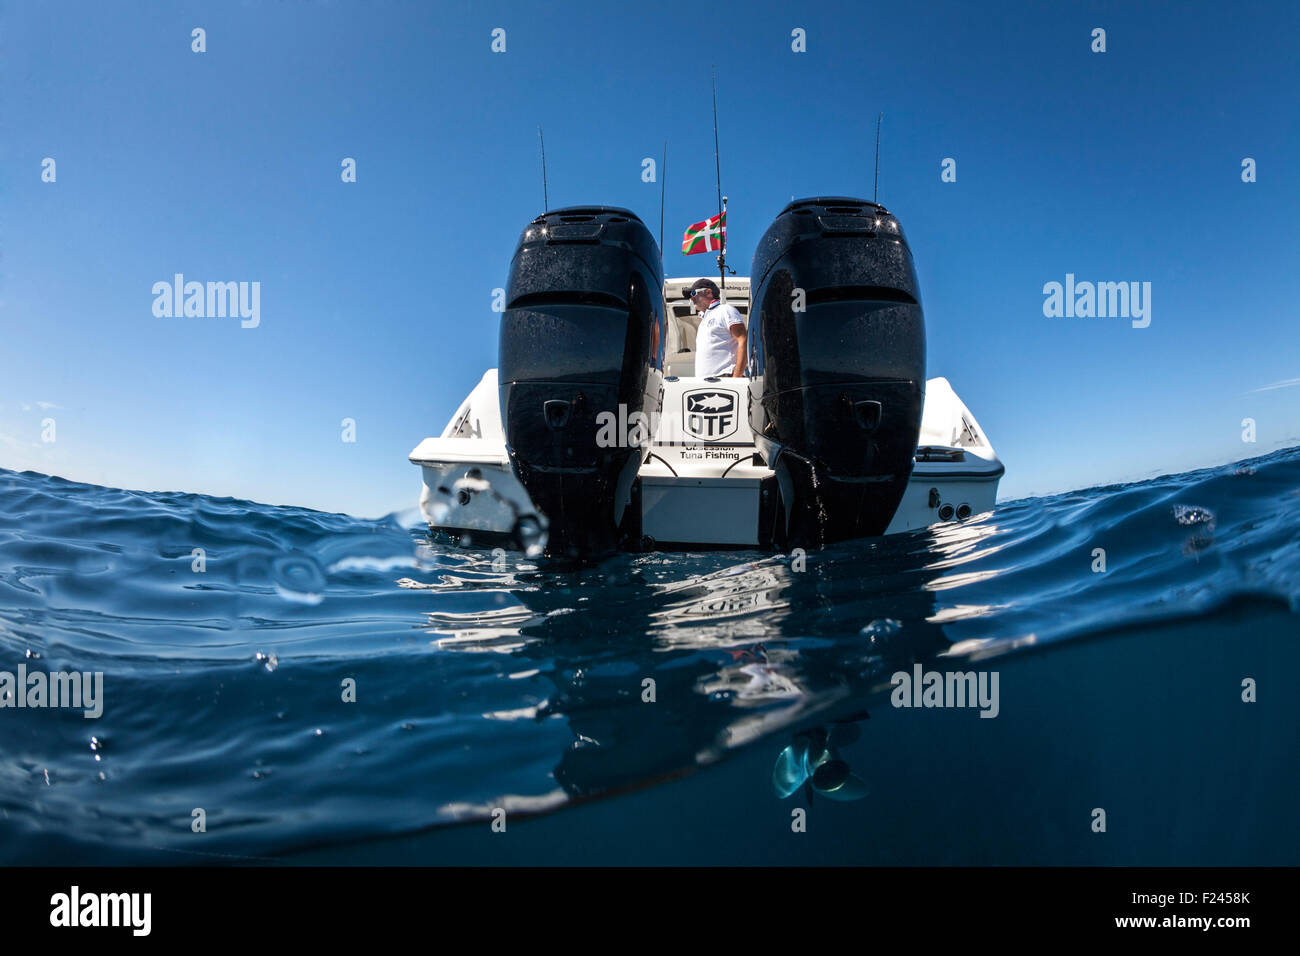 A Boston Whaler 320 Outrage speedboat with its 300 horsepower outboard Mercury motors. Split shot above and below - Stock Image